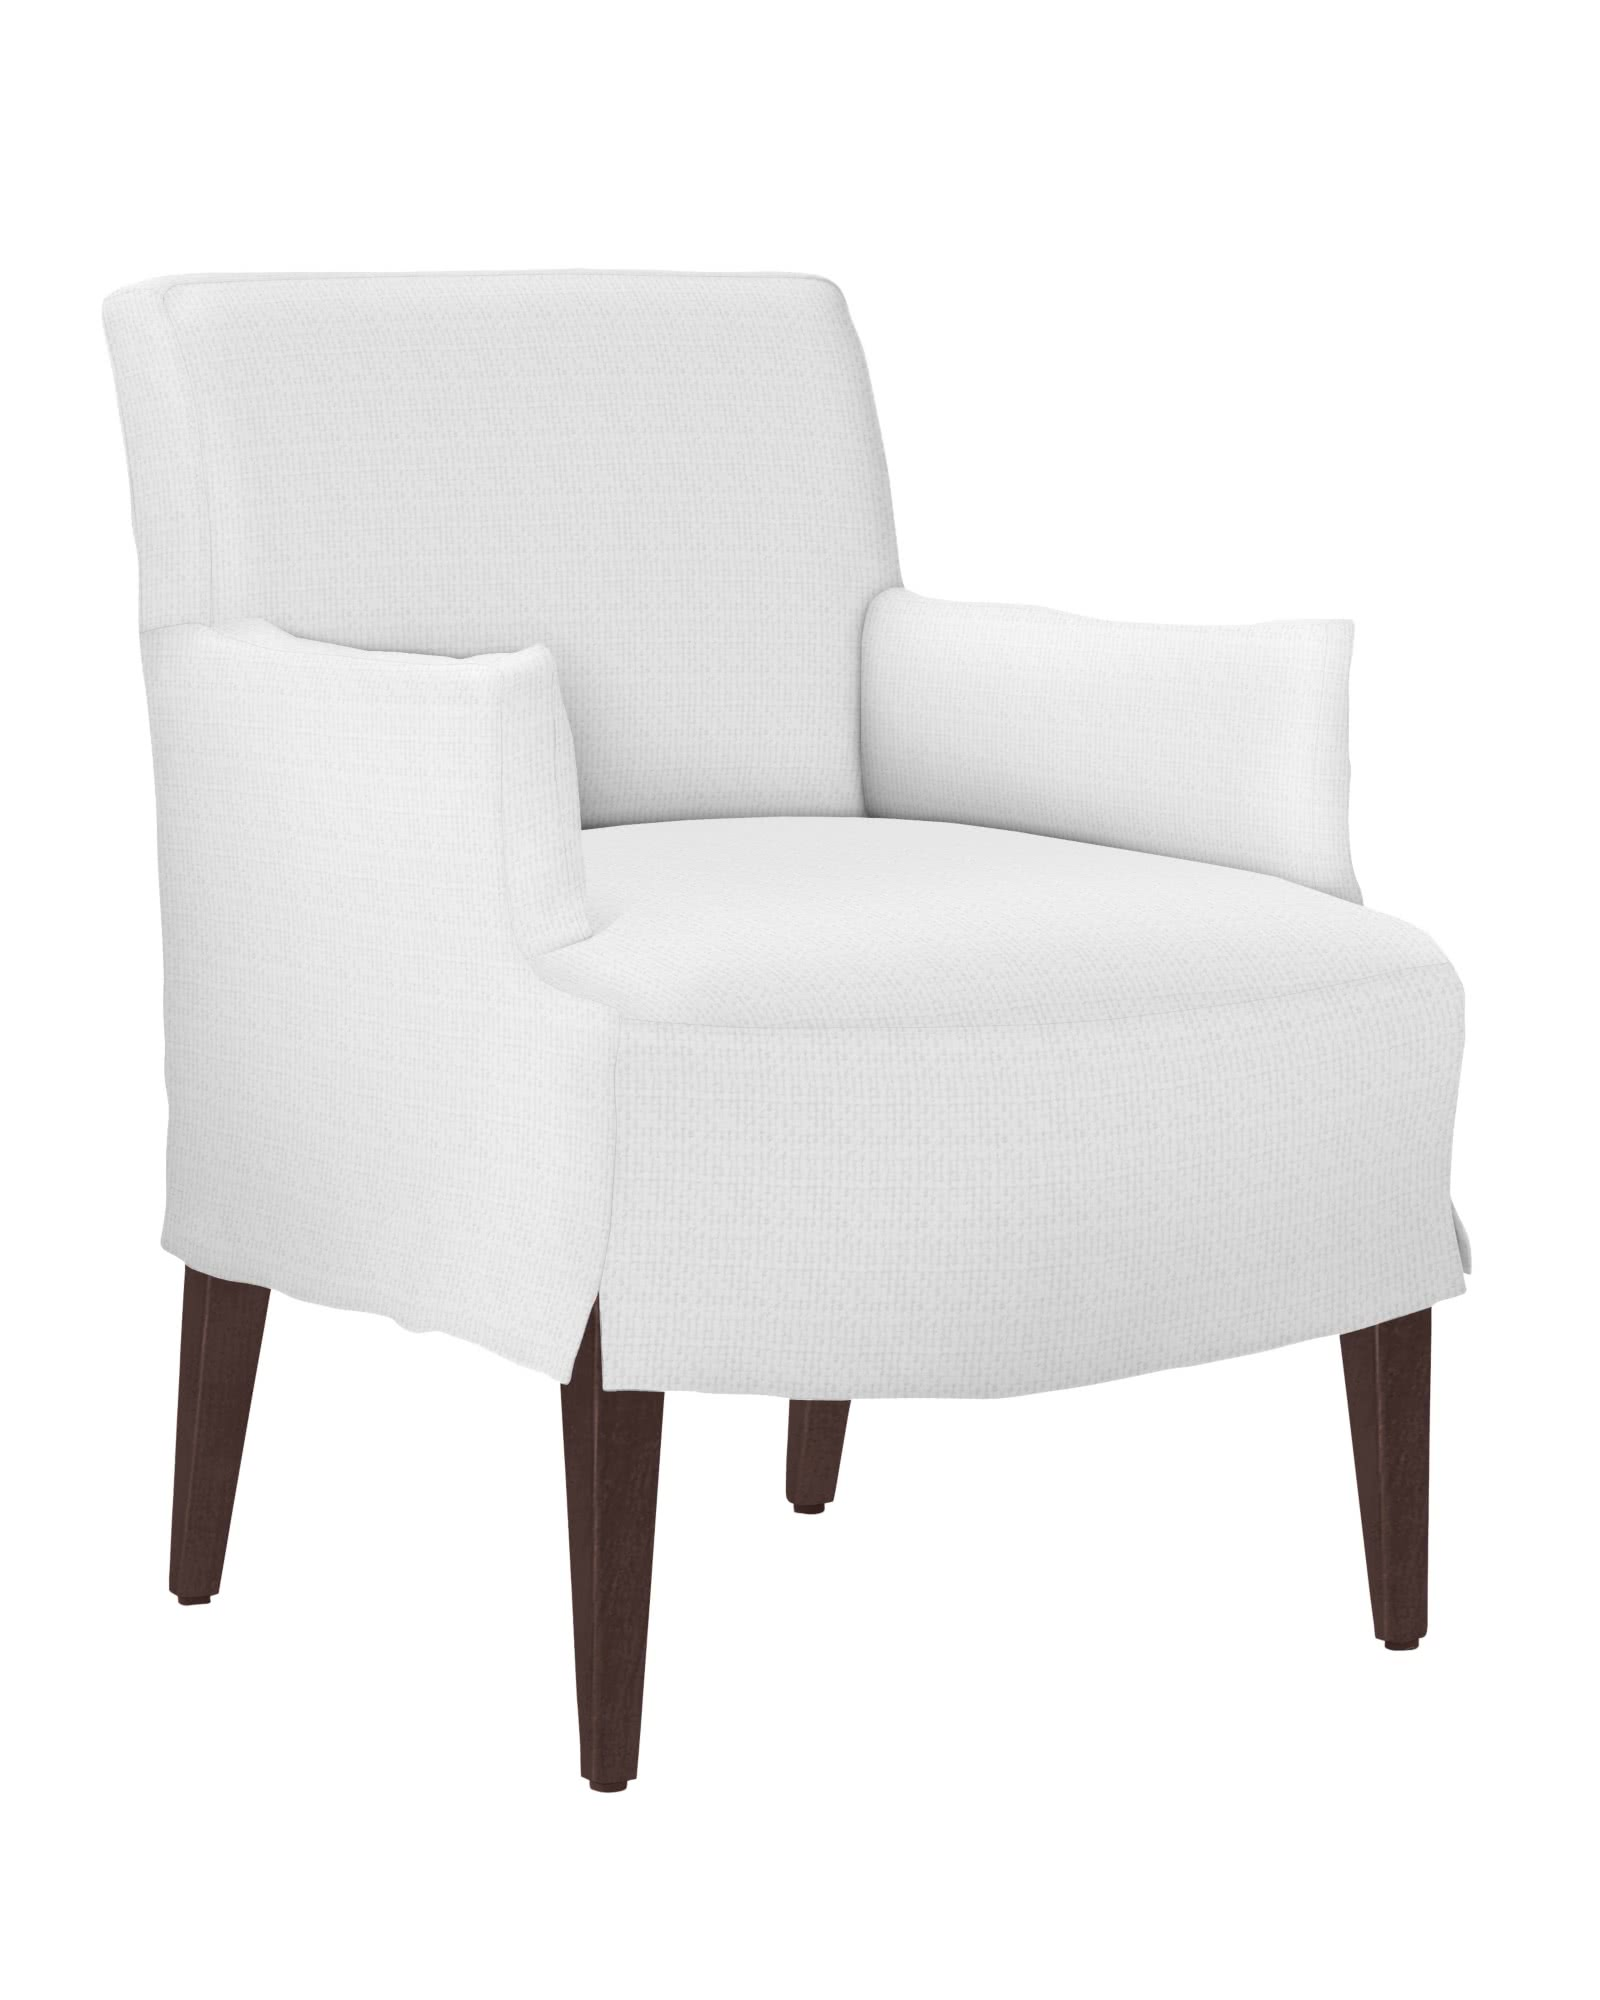 dining room arm chair slipcovers chair to ordering comfort w